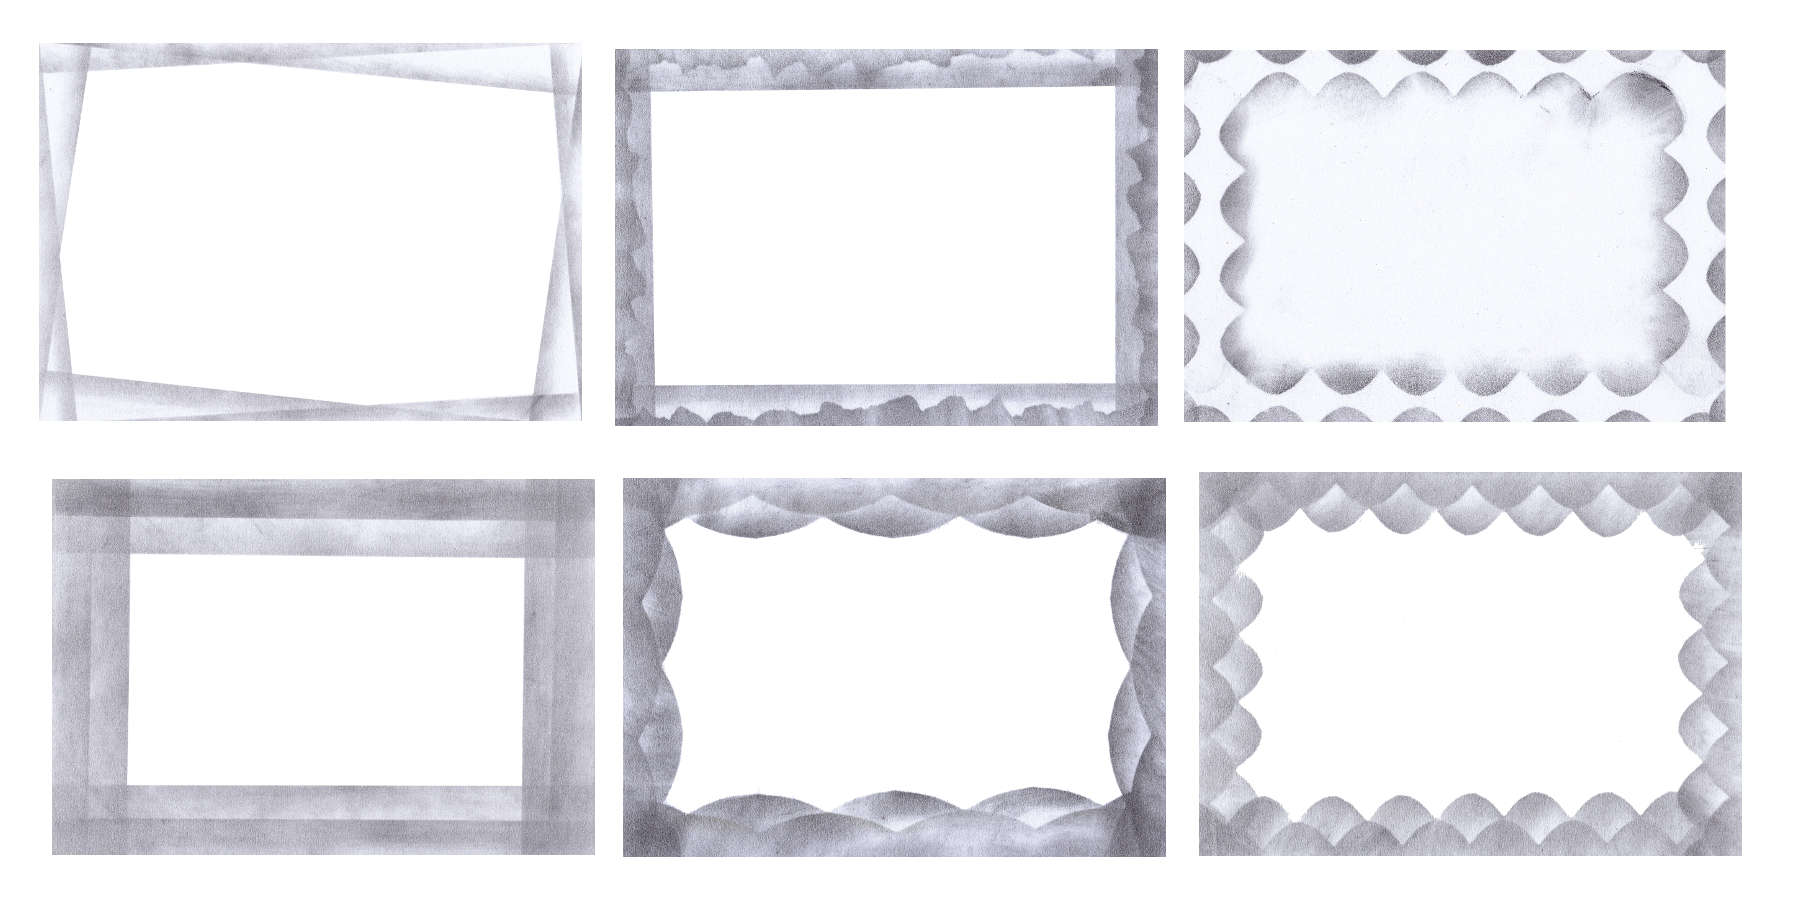 6-pencil-drawing-frame-cover.jpg